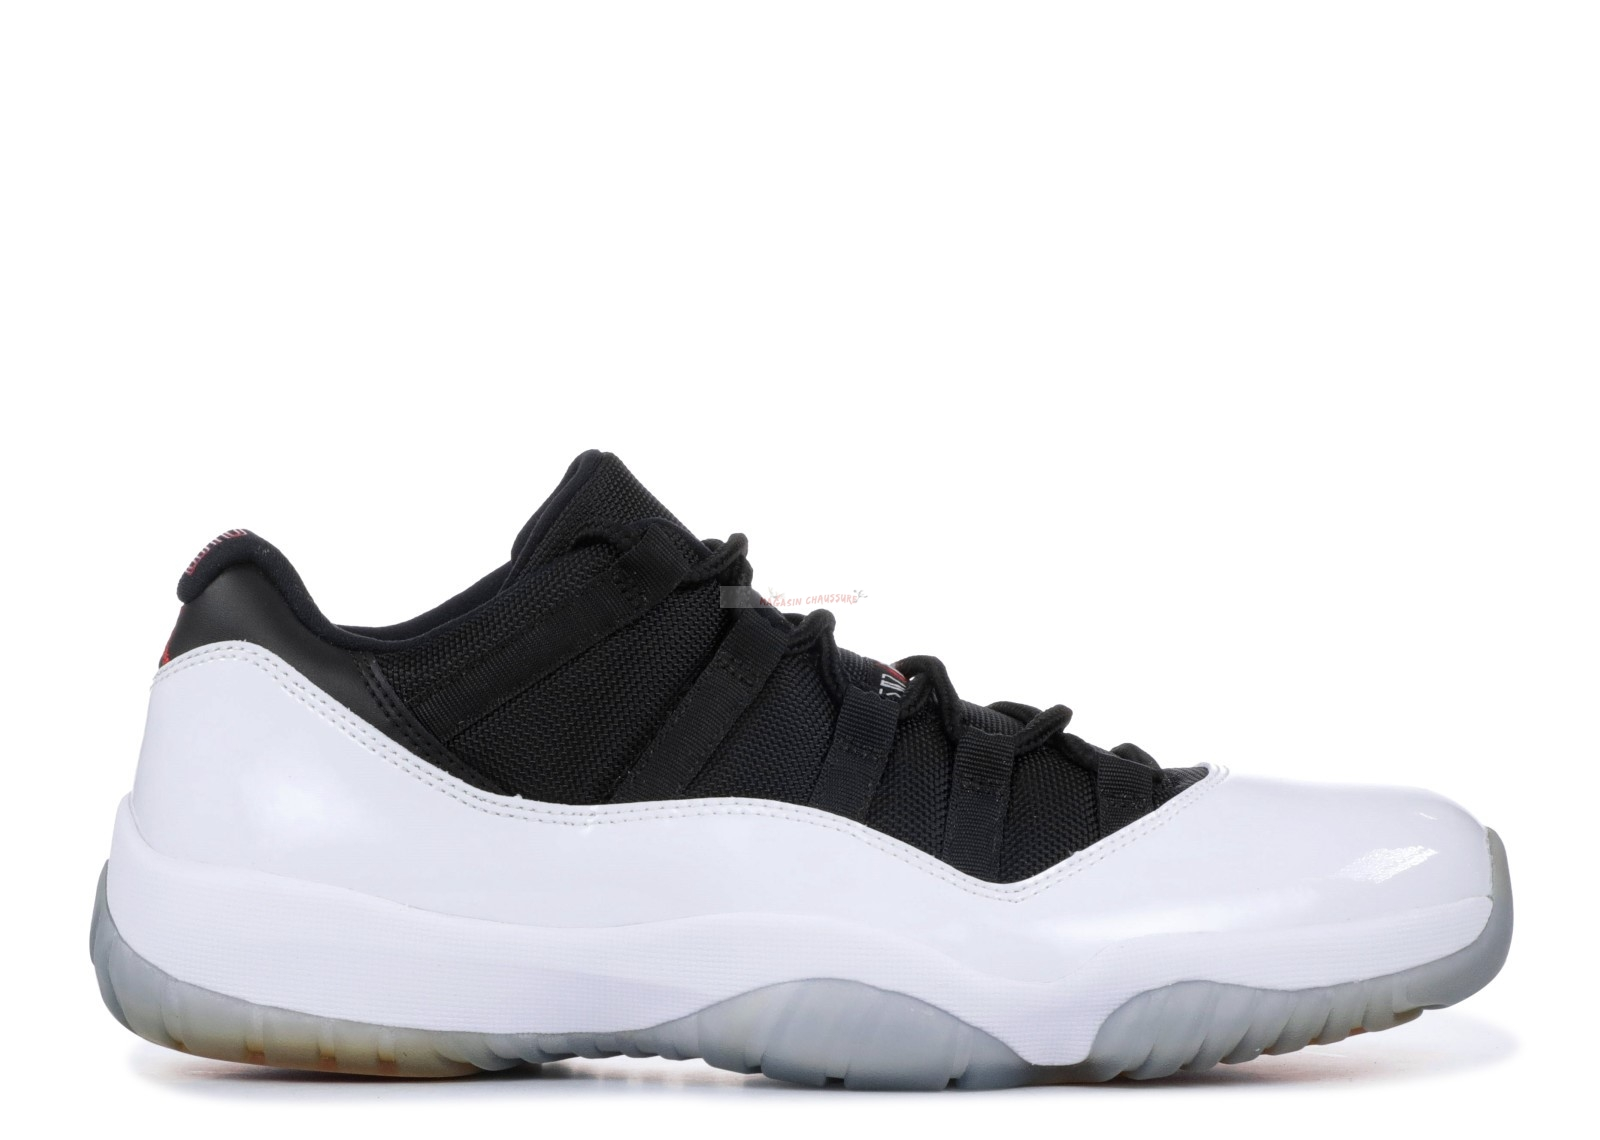 Air Jordan 11 Retro Low Noir Blanc (528895-110) Chaussure de Basket